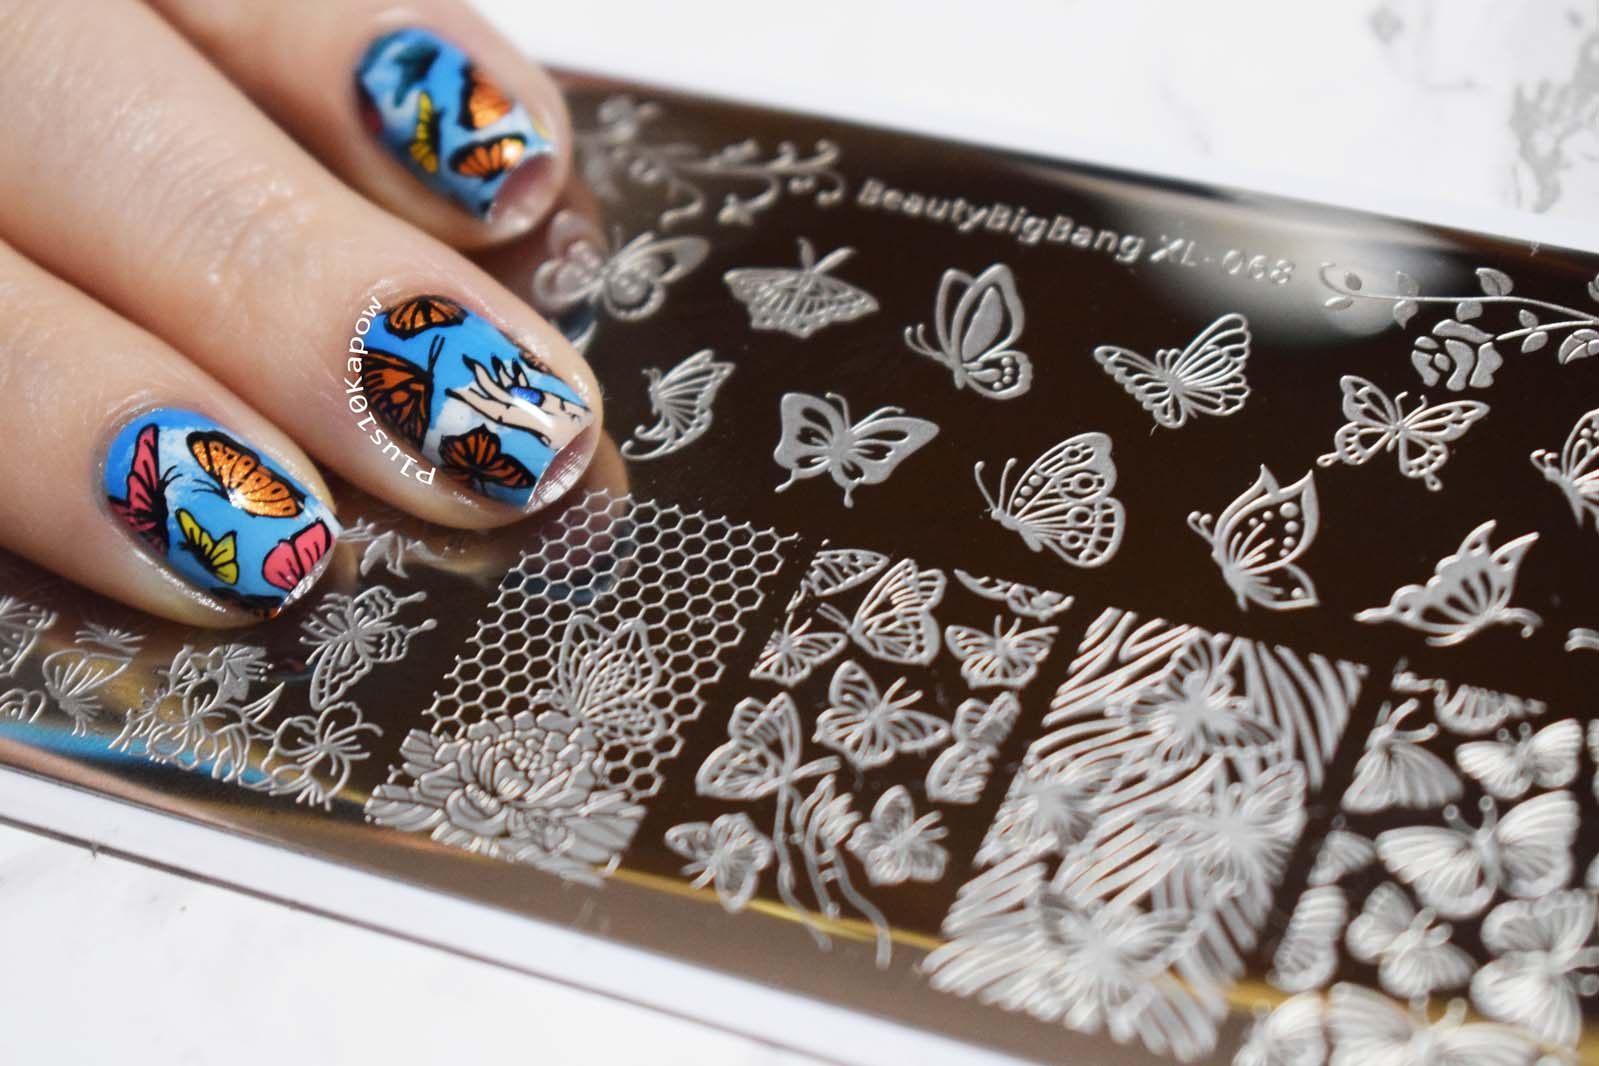 Butterfly nails Beauty Big Bang Xl-068 Plus10Kapow